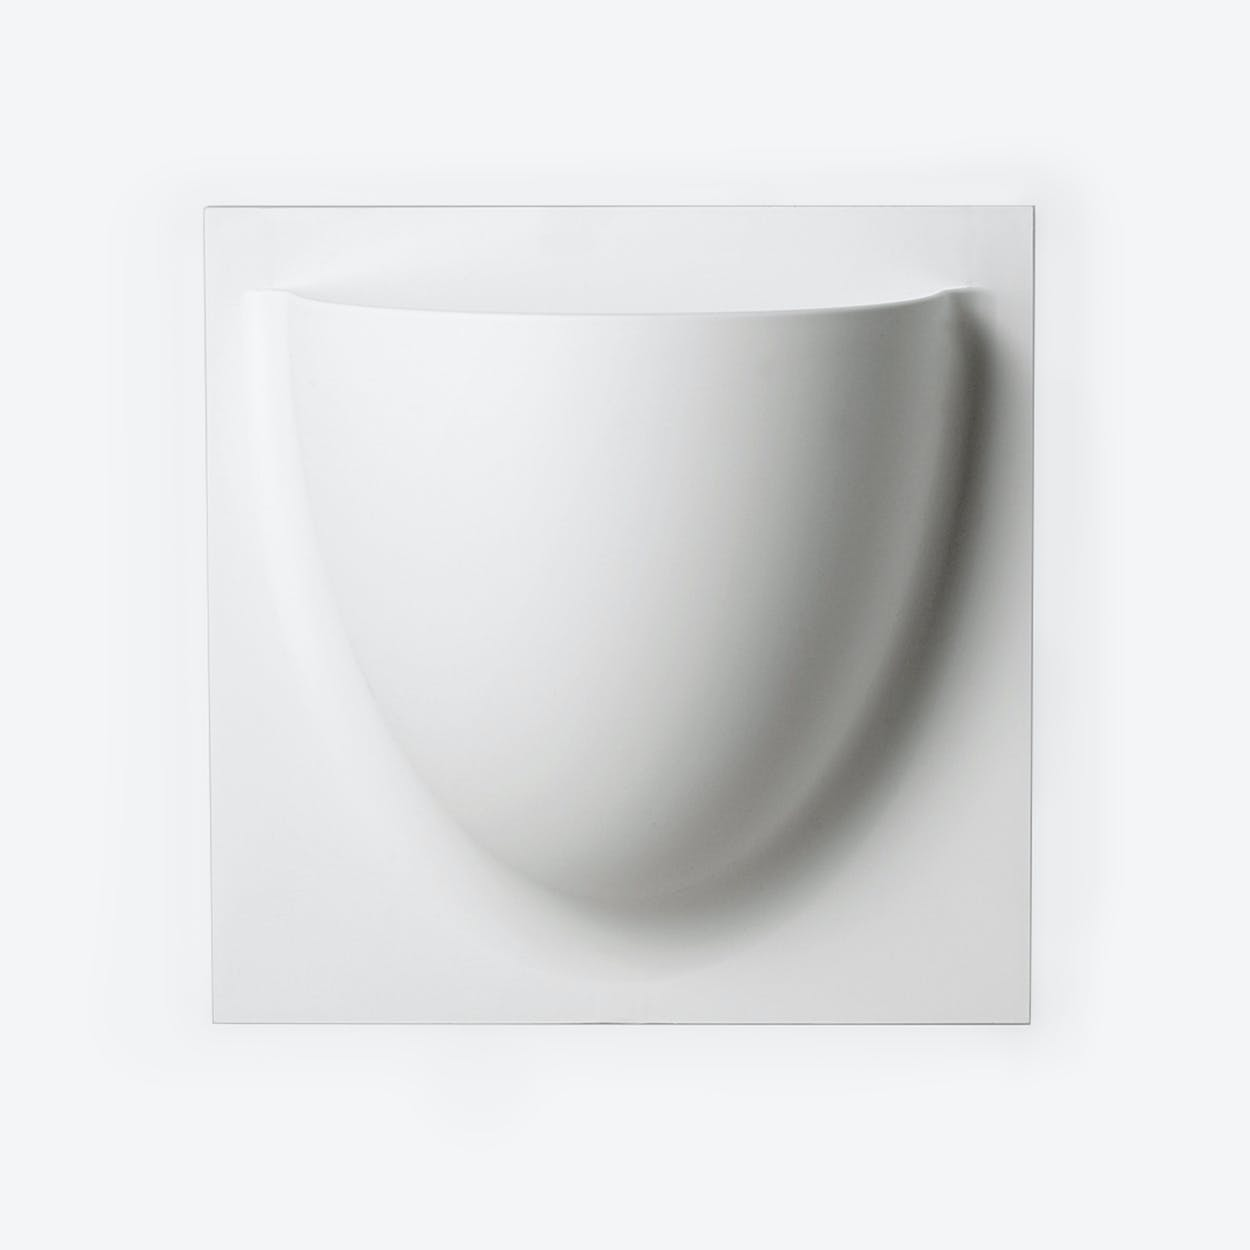 Wall Planter / Jar in White